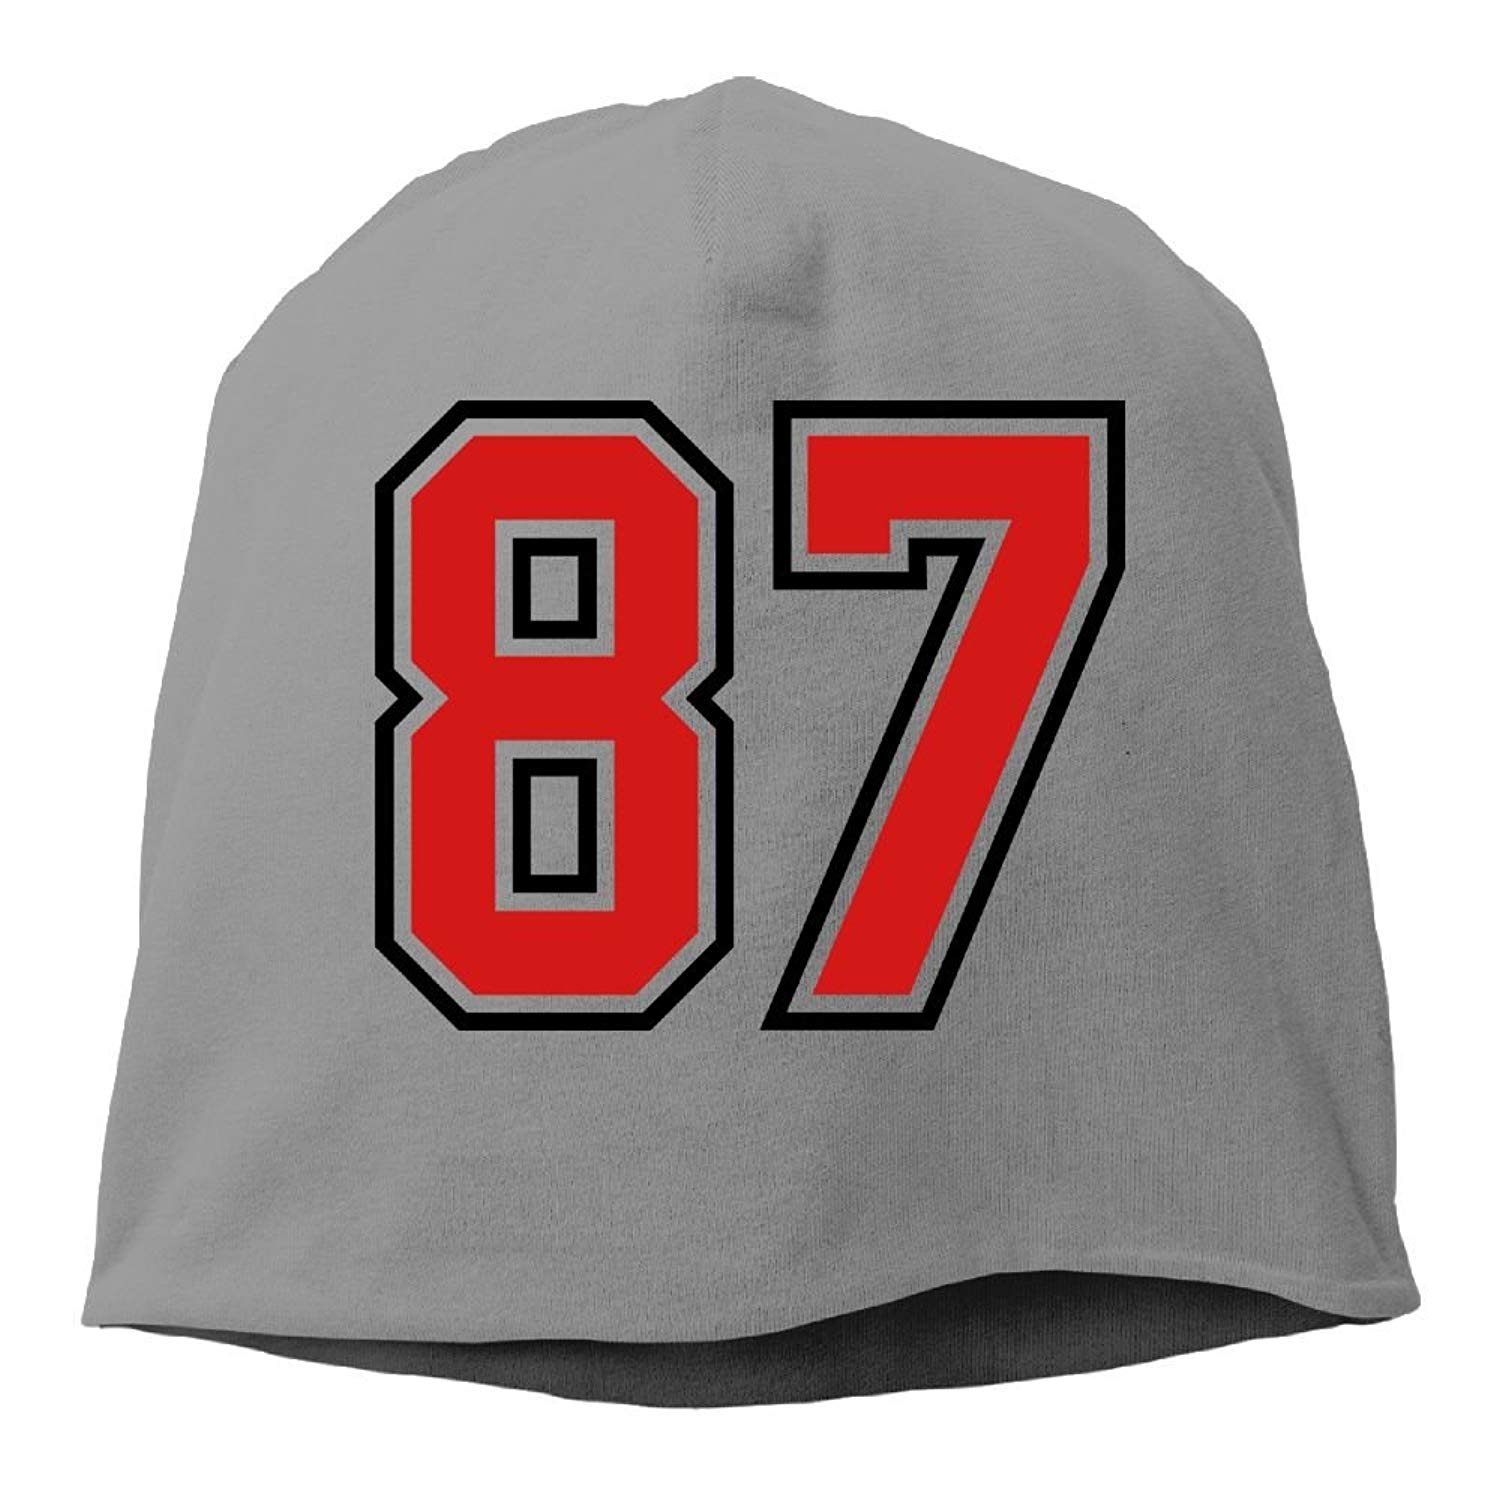 87 Sports Jersey Football Number Thinsulate Insulated Cuffed Winter Hat